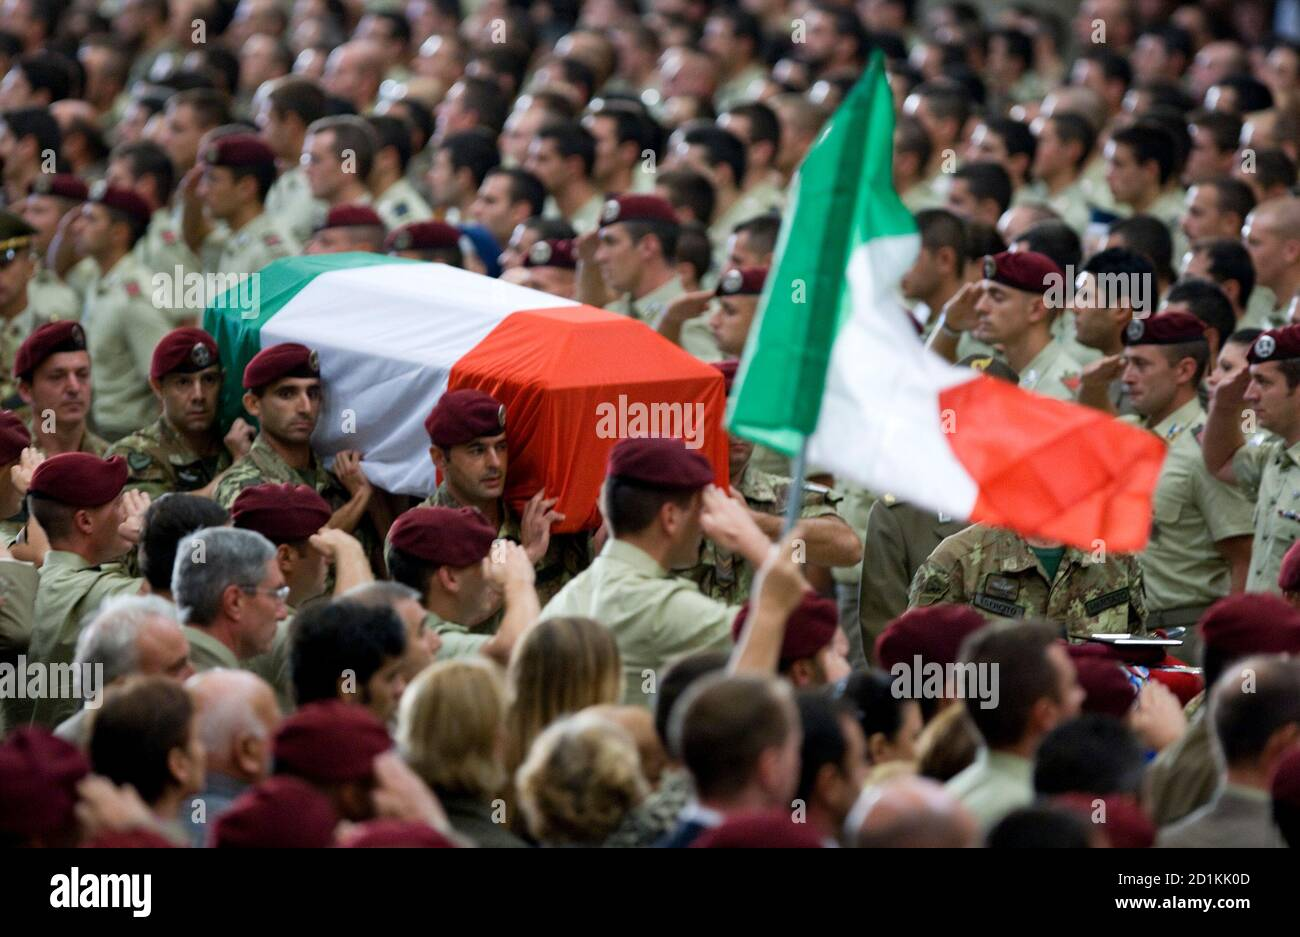 """Italian soldiers carry the coffin of one of the six Italian soldiers killed in Afghanistan, as the Italy national flag flies during a funeral service at Saint Paul Basilica in Rome September 21, 2009. Italy wants to withdraw its troops from Afghanistan """"as soon as possible"""" but will not take the decision unilaterally, Berlusconi said on Thursday.   REUTERS/Alessandro Bianchi   (ITALY POLITICS CONFLICT OBITUARY IMAGES OF THE DAY) Foto de stock"""